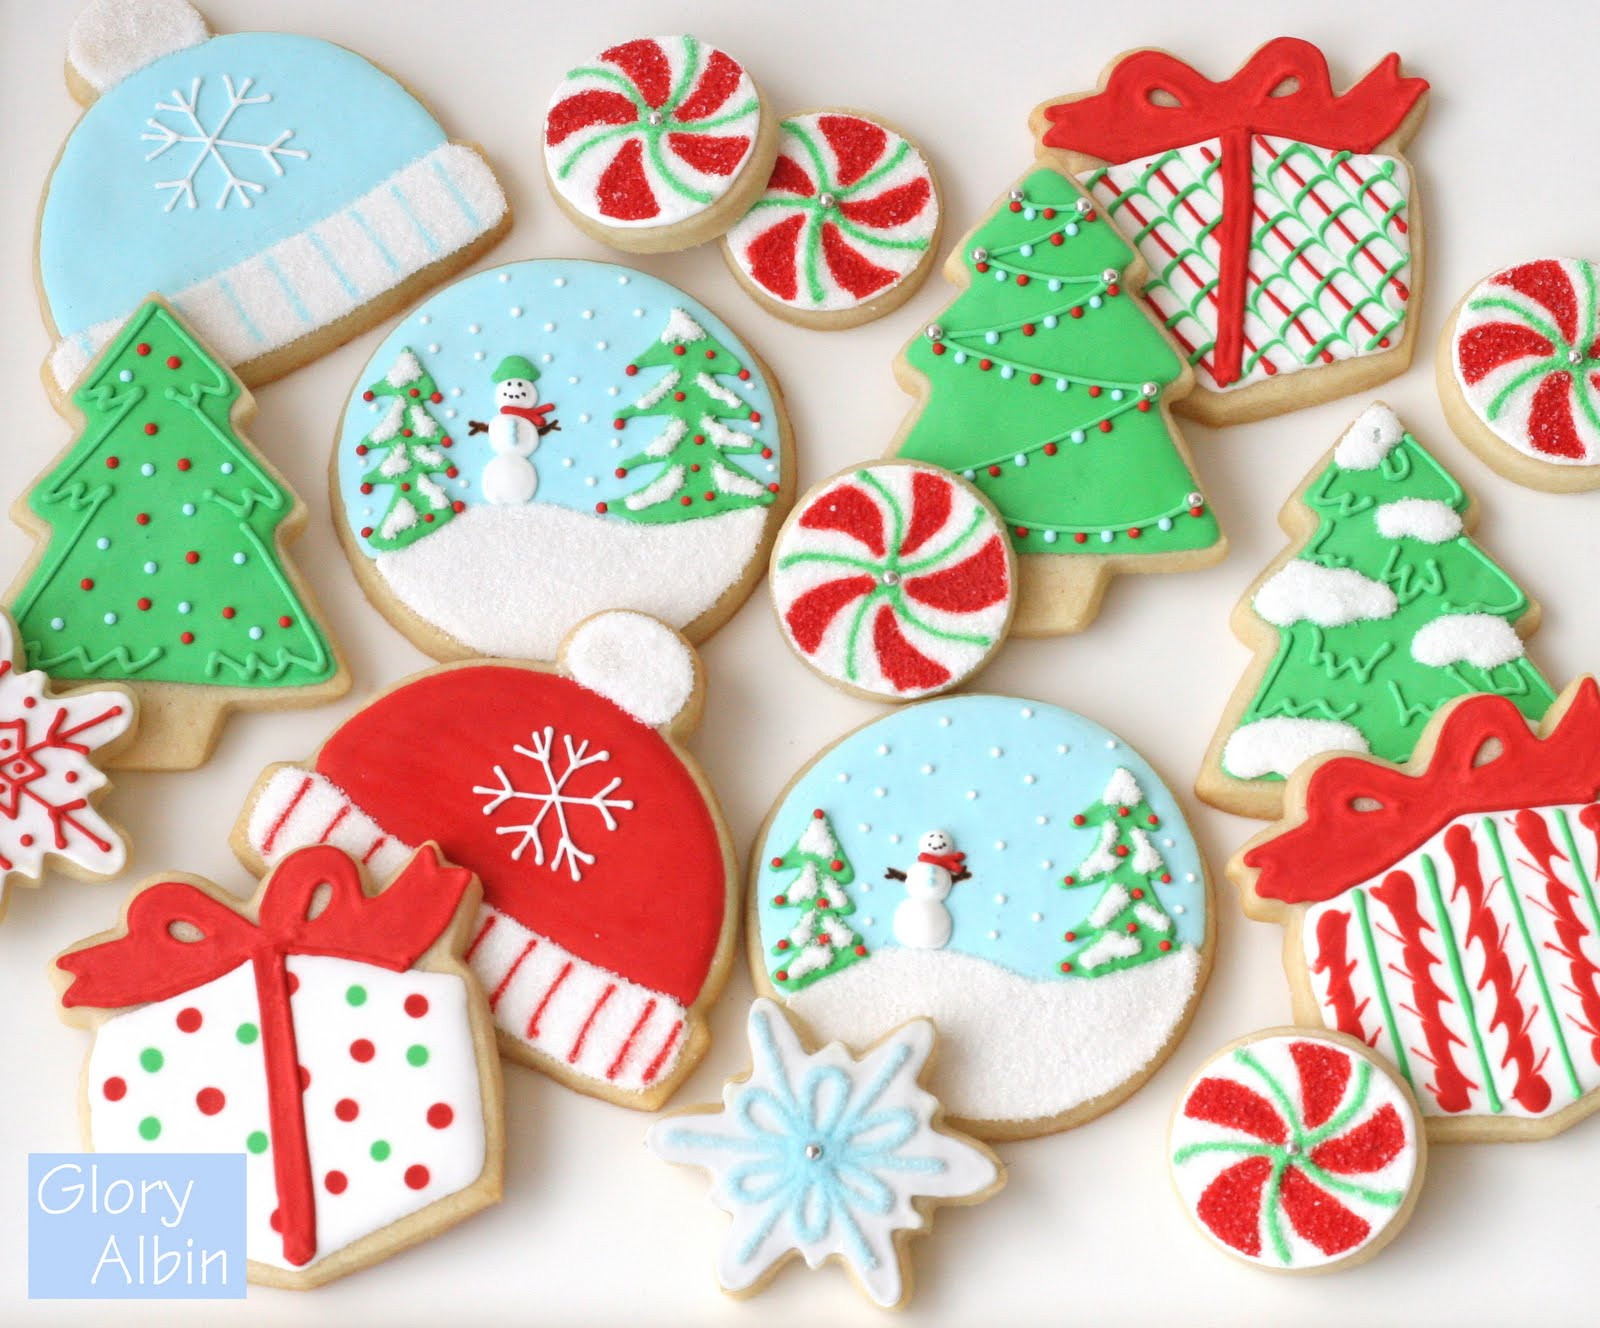 Icing For Christmas Cookies  Decorating Sugar Cookies with Royal Icing – Glorious Treats